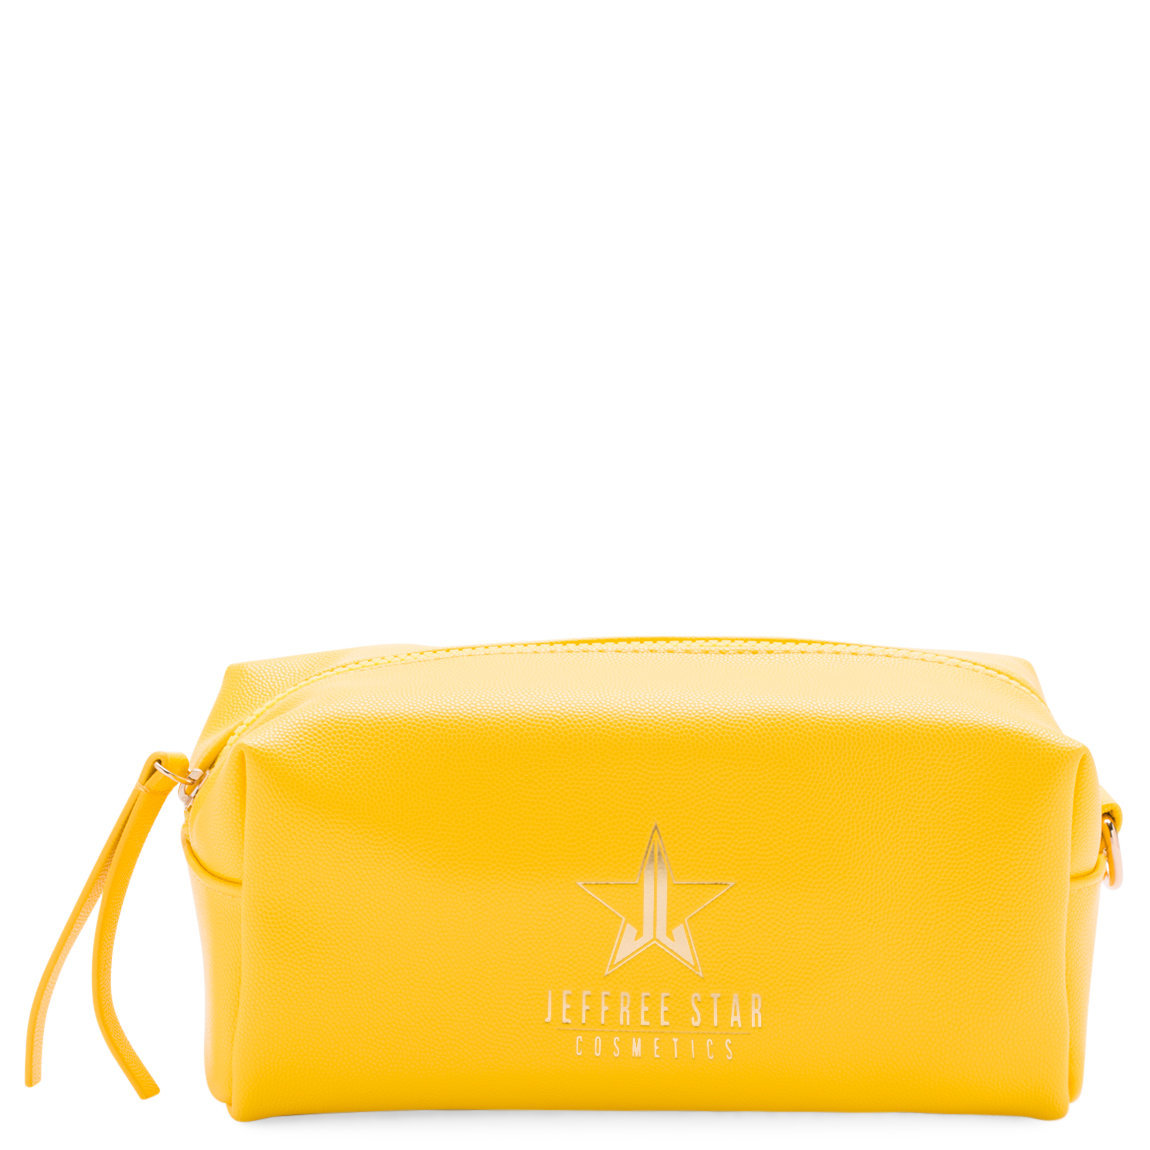 Jeffree Star Cosmetics Accessory Bag Yellow product swatch.